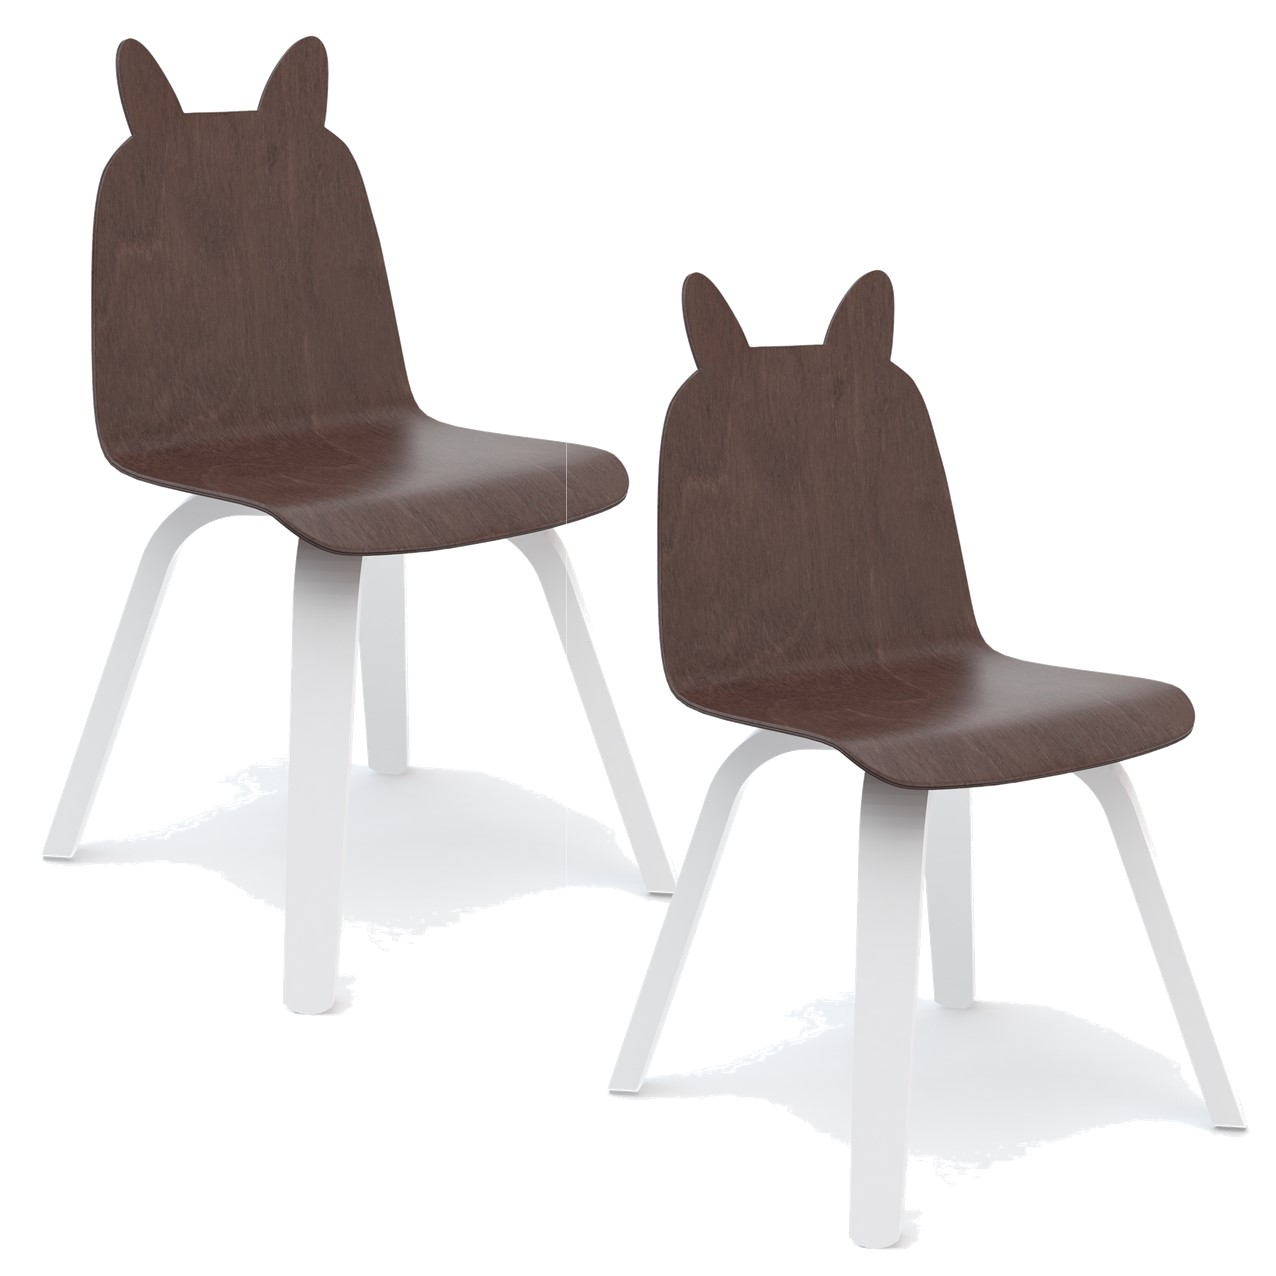 """Oeuf NYC - Chaise à oreilles """"Lapin"""" - Châtaigner"""